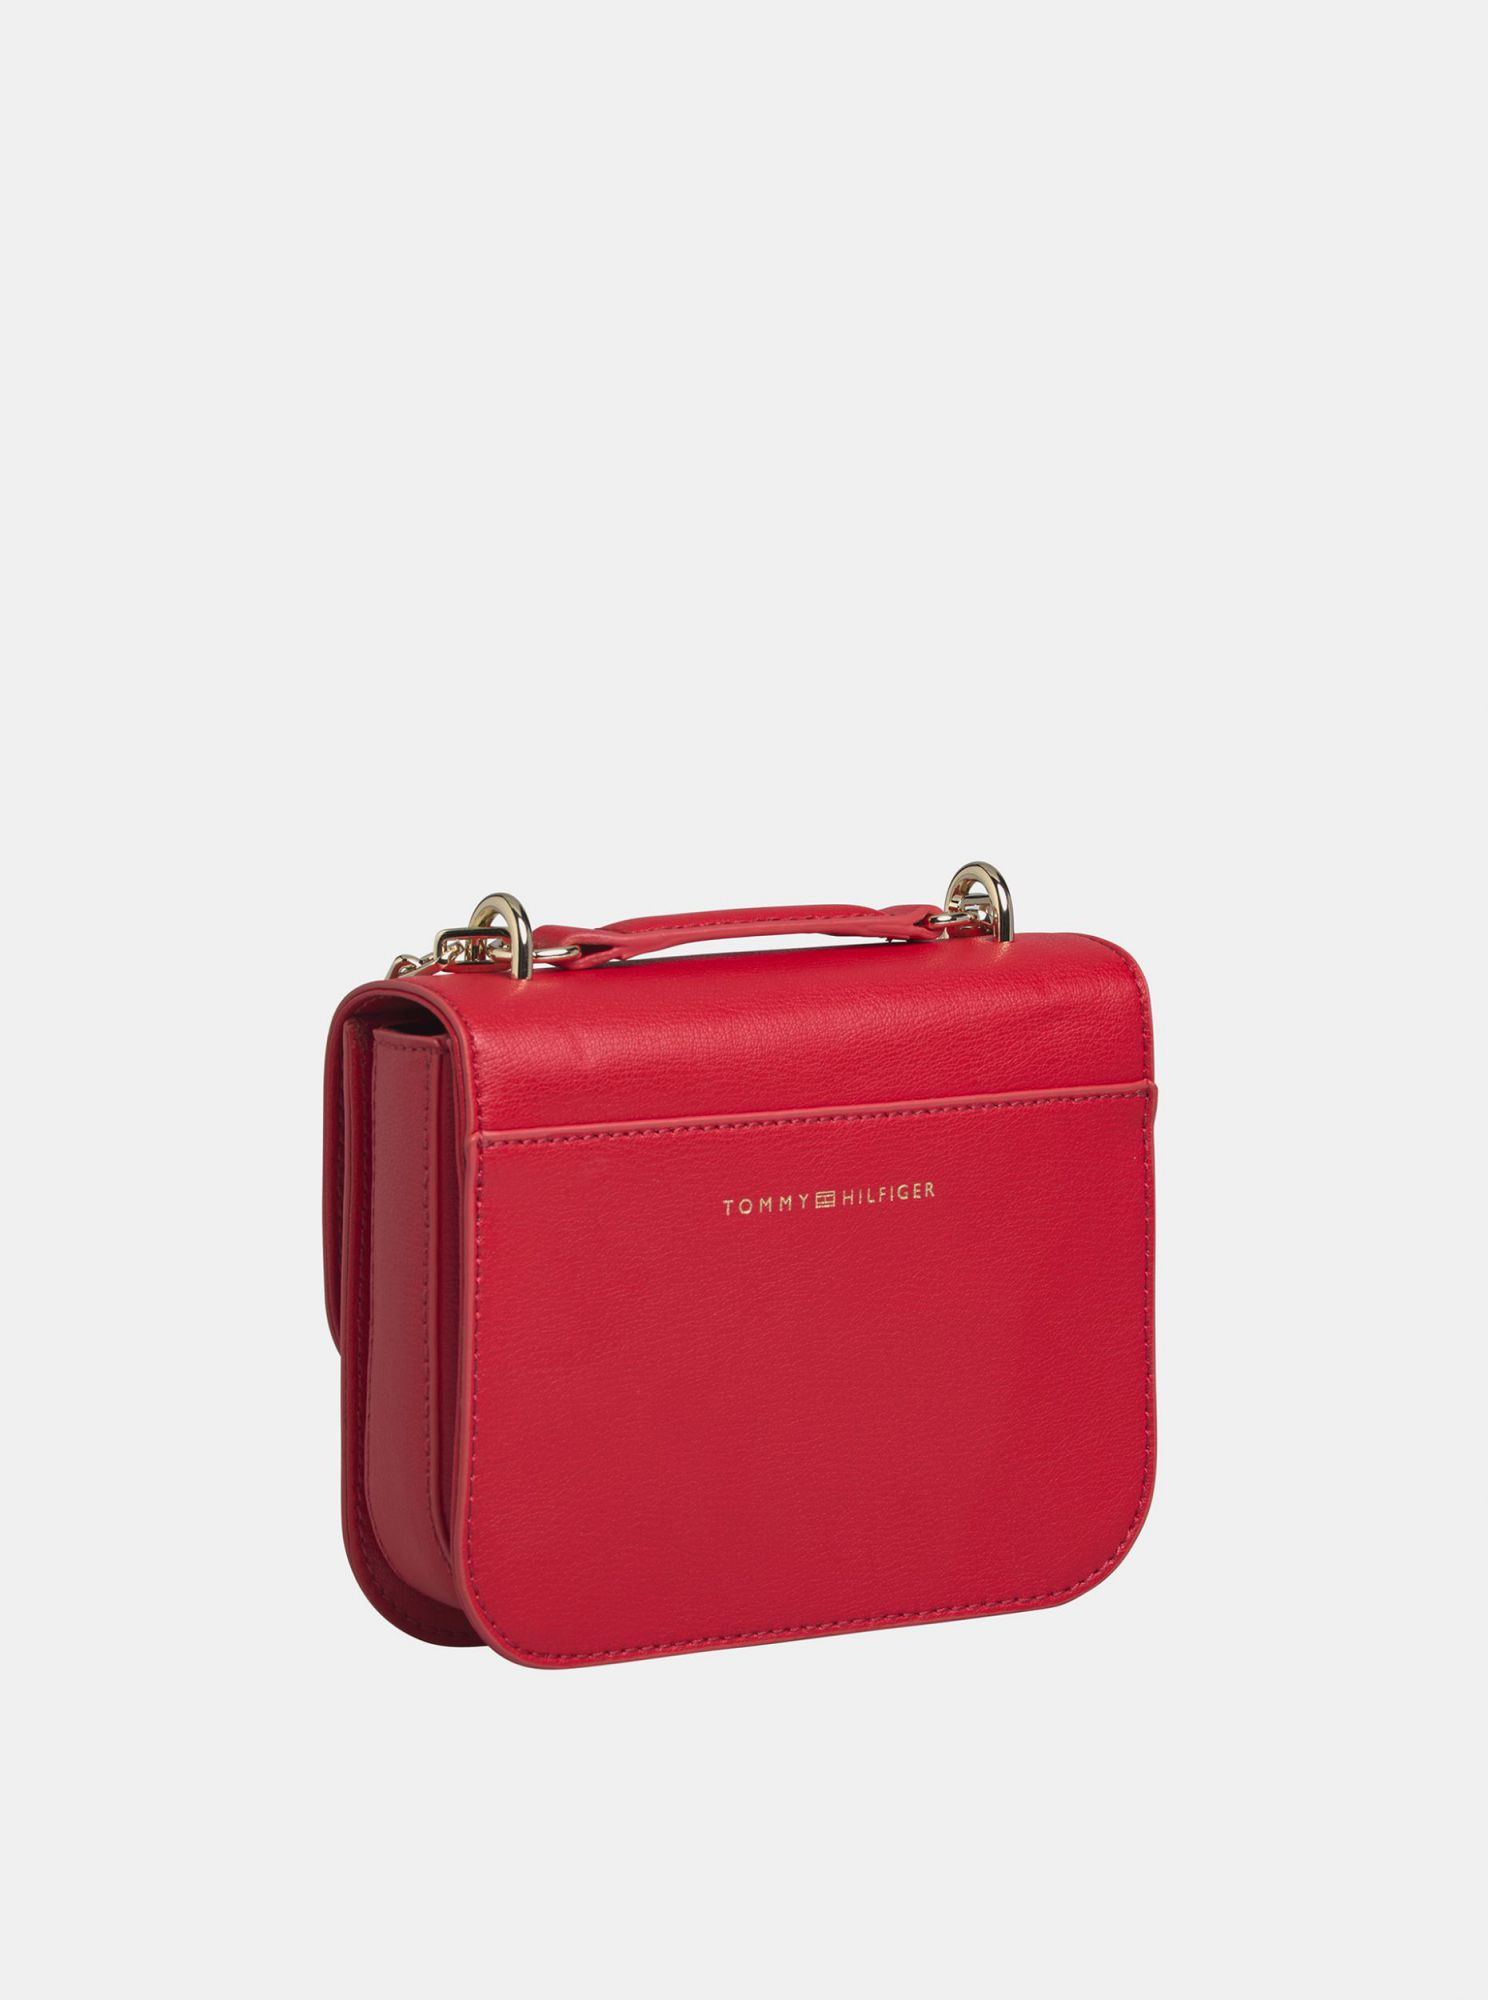 Red leather crossbody handbag by Tommy Hilfiger